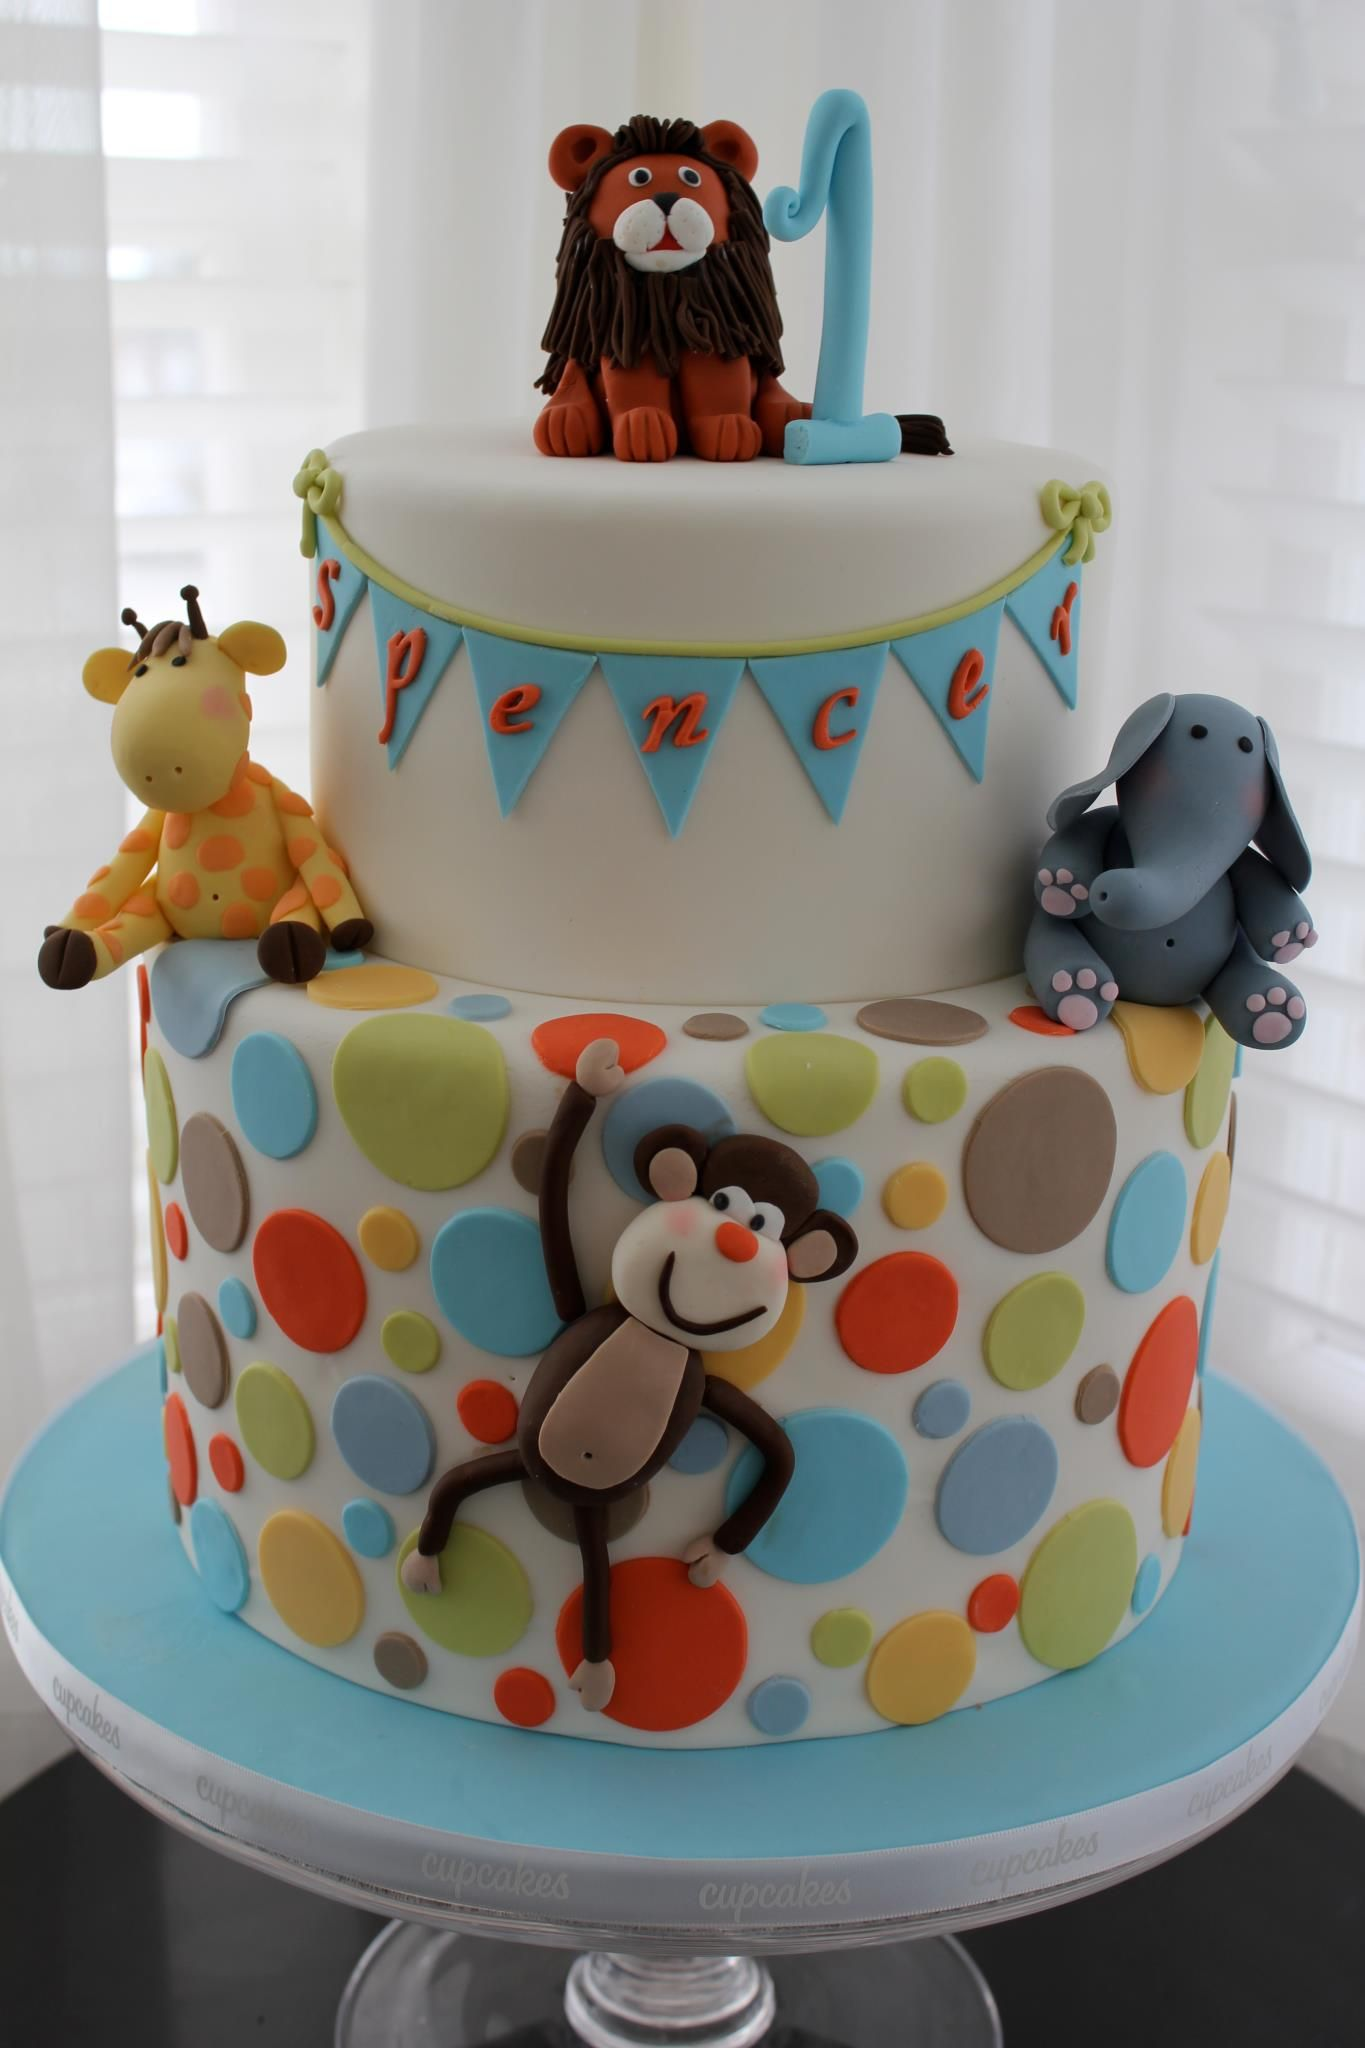 Love the critters Would be cute for his first birthday cake if